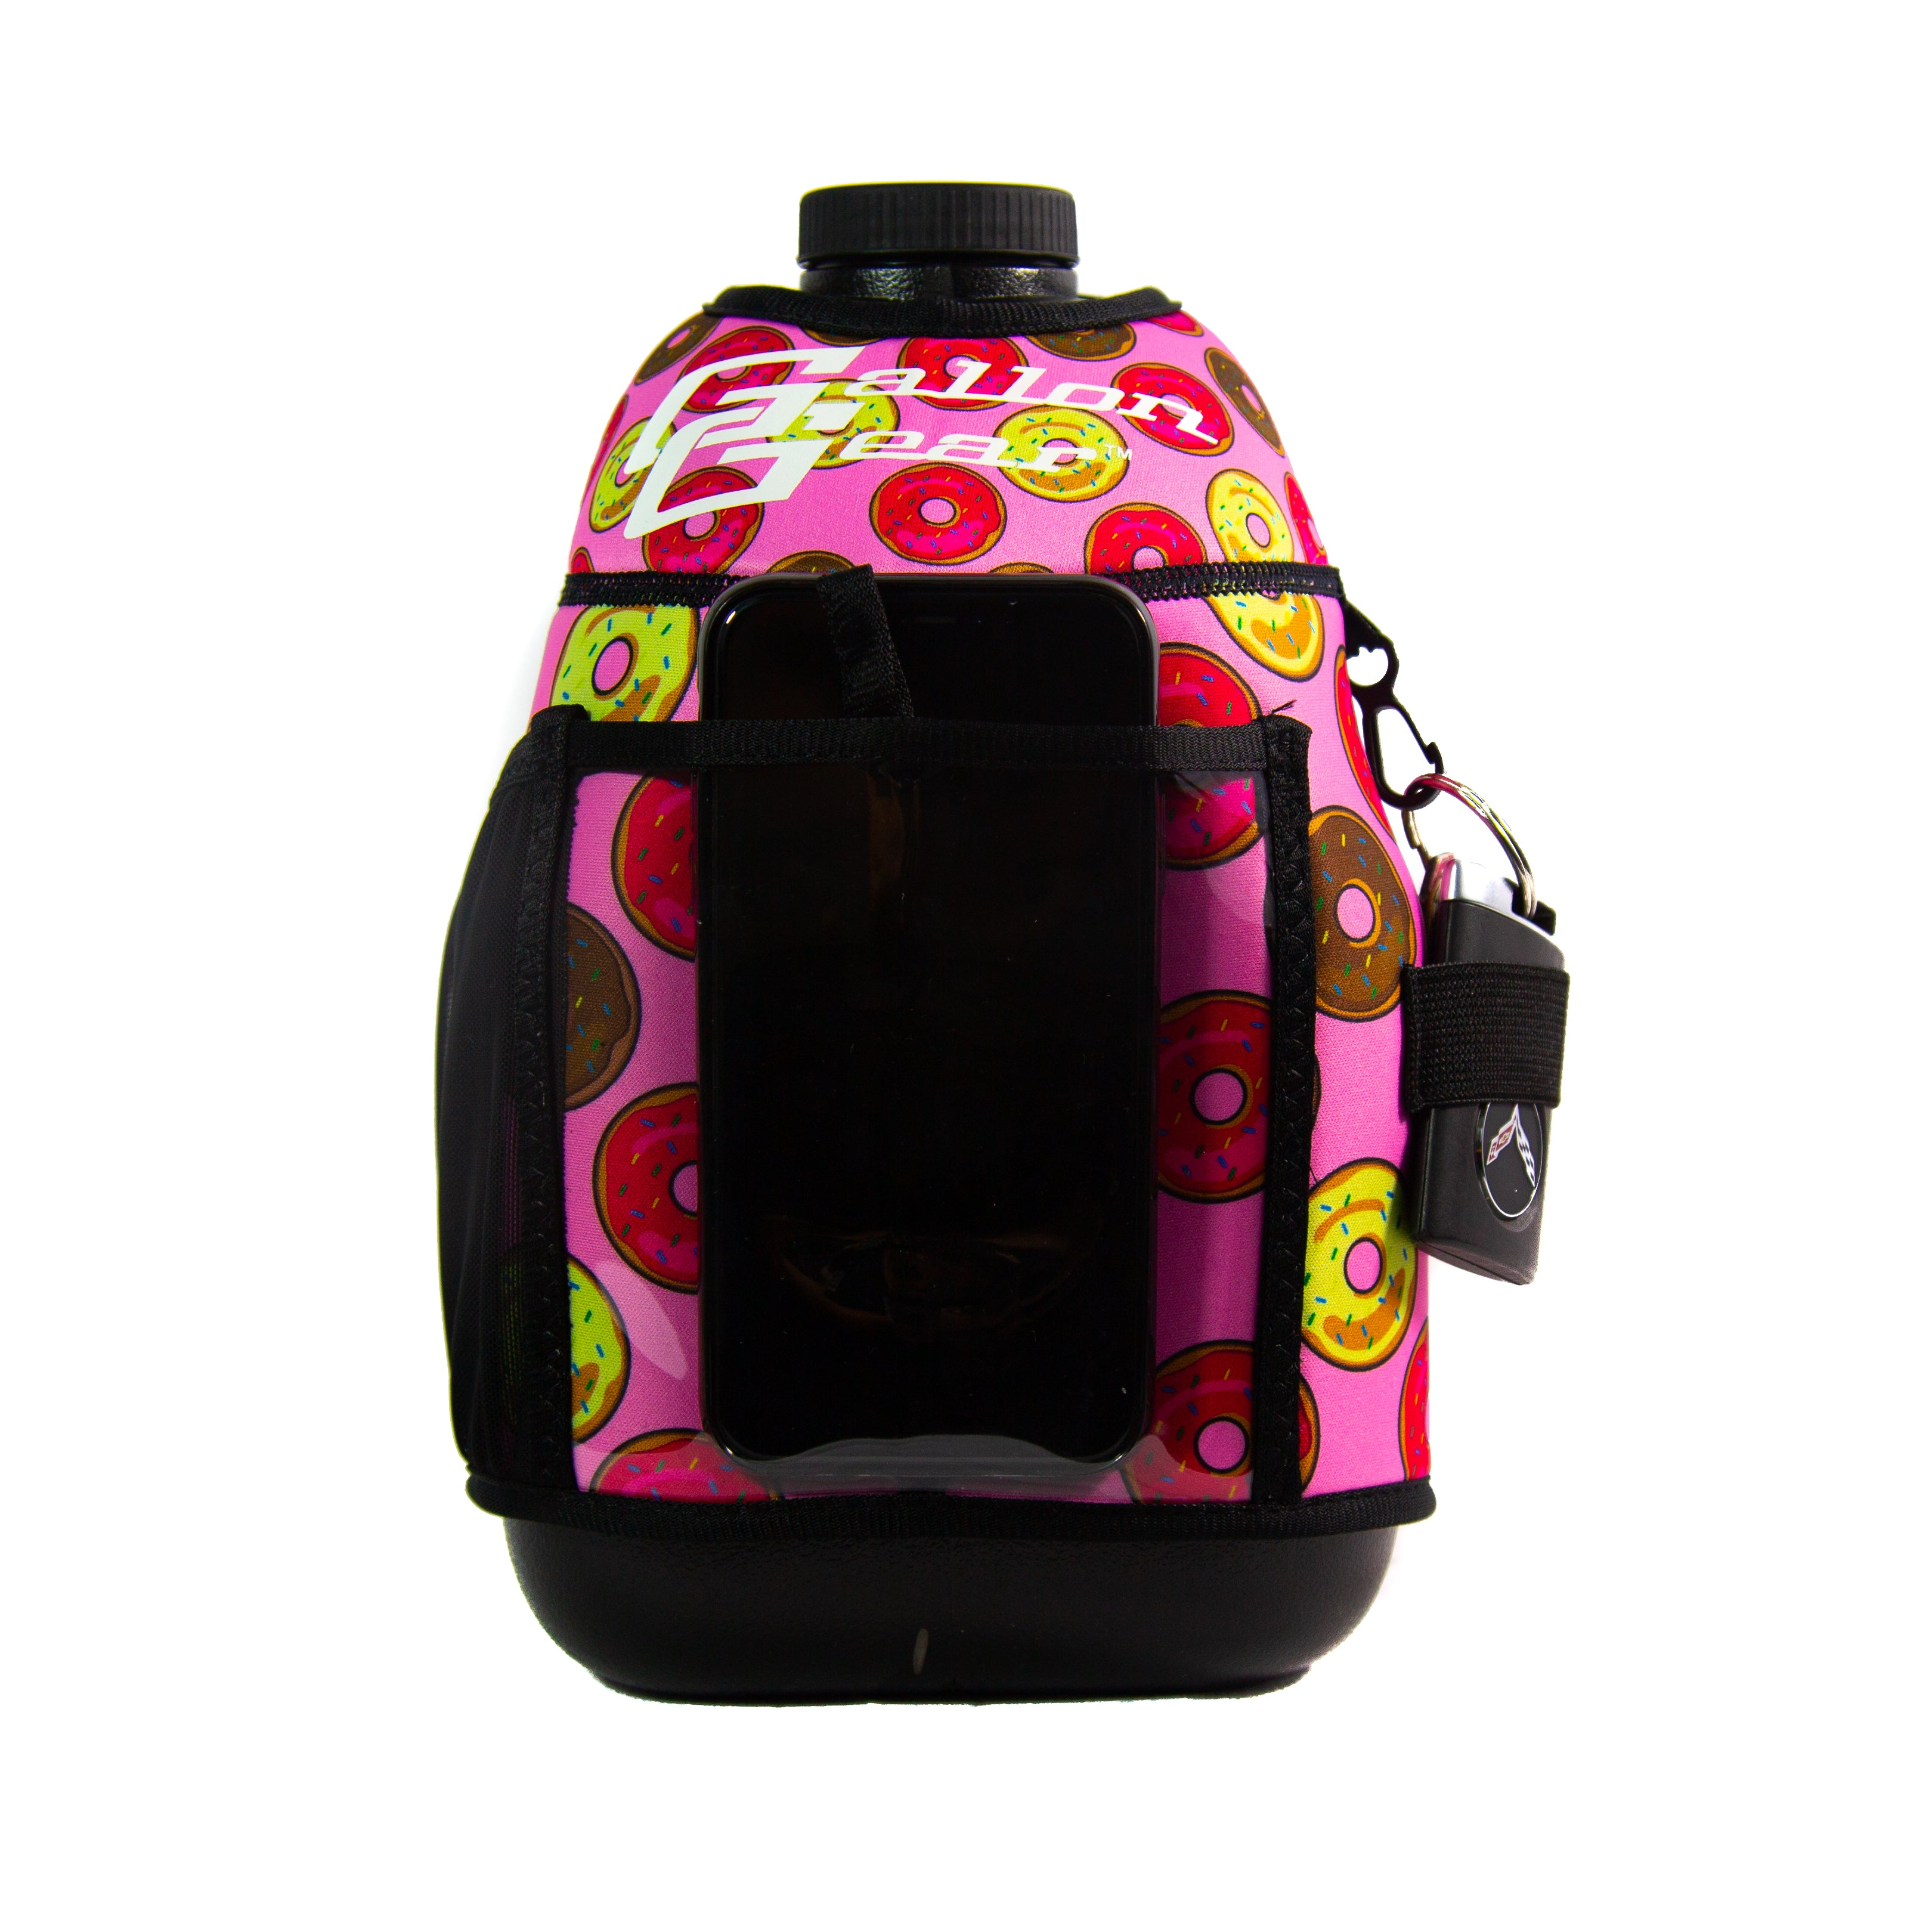 Pink Donut Gallon Gear Fitness Hydration Cover